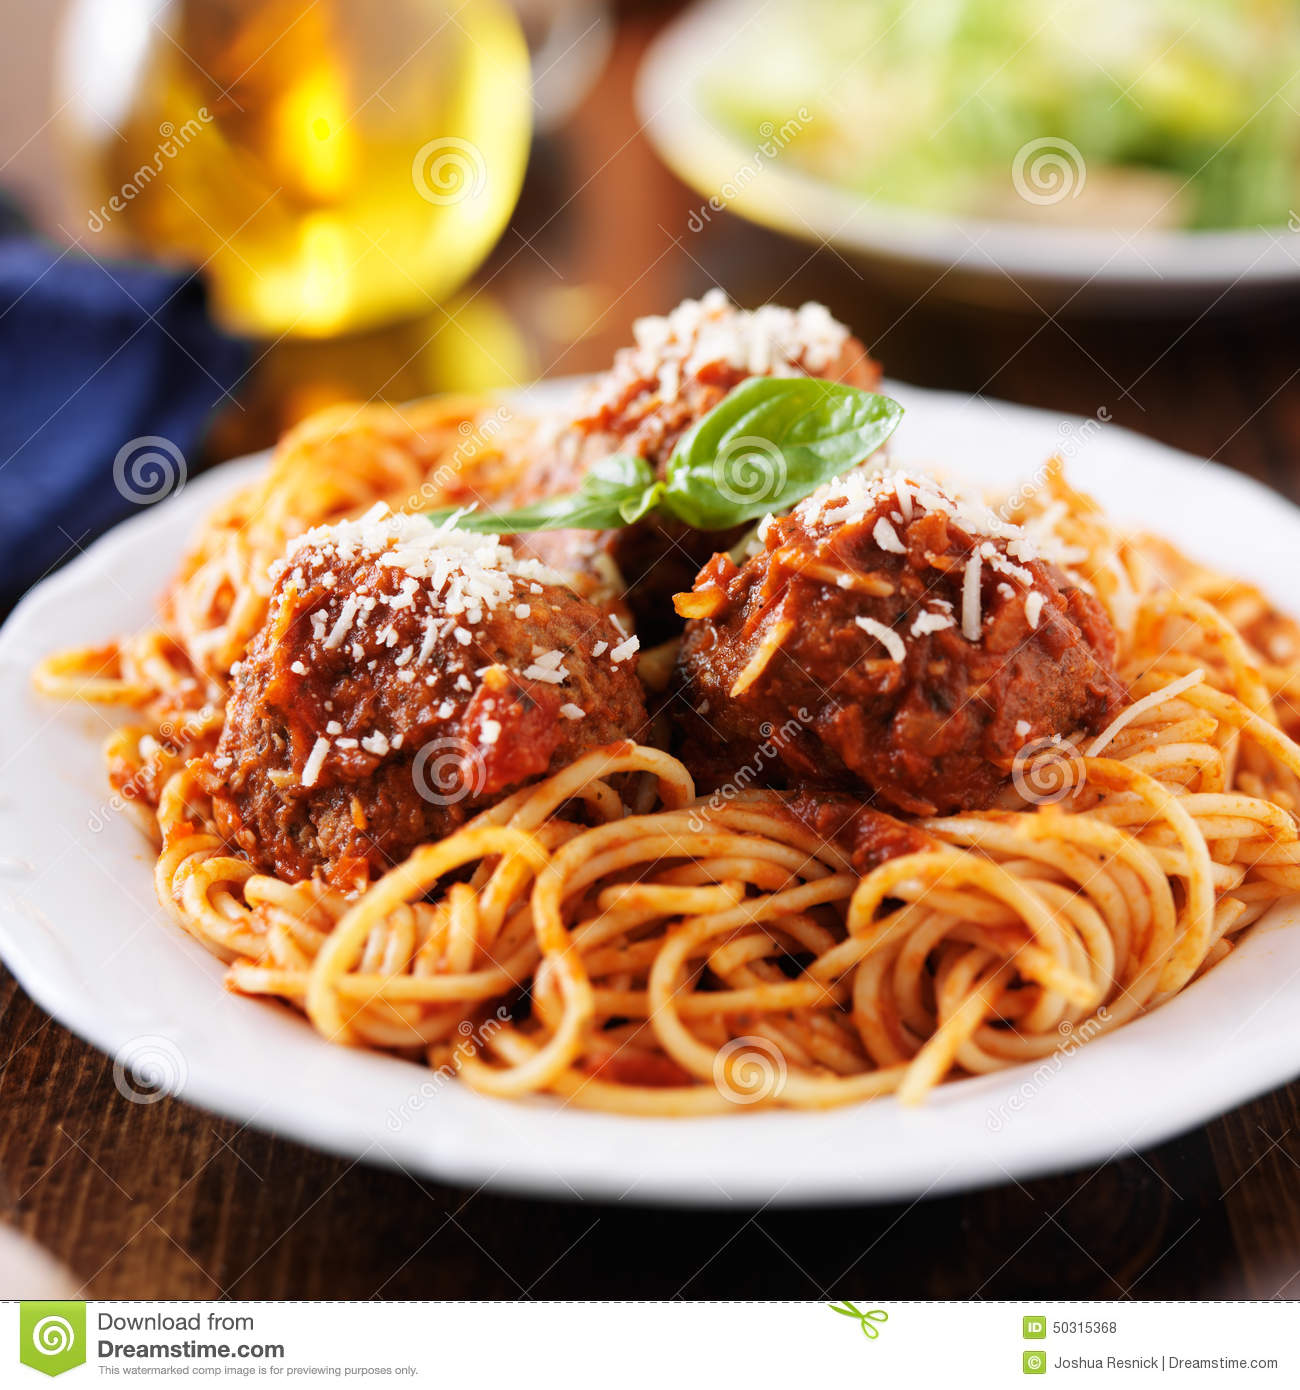 how to make spaghetti and meatballs without tomato sauce